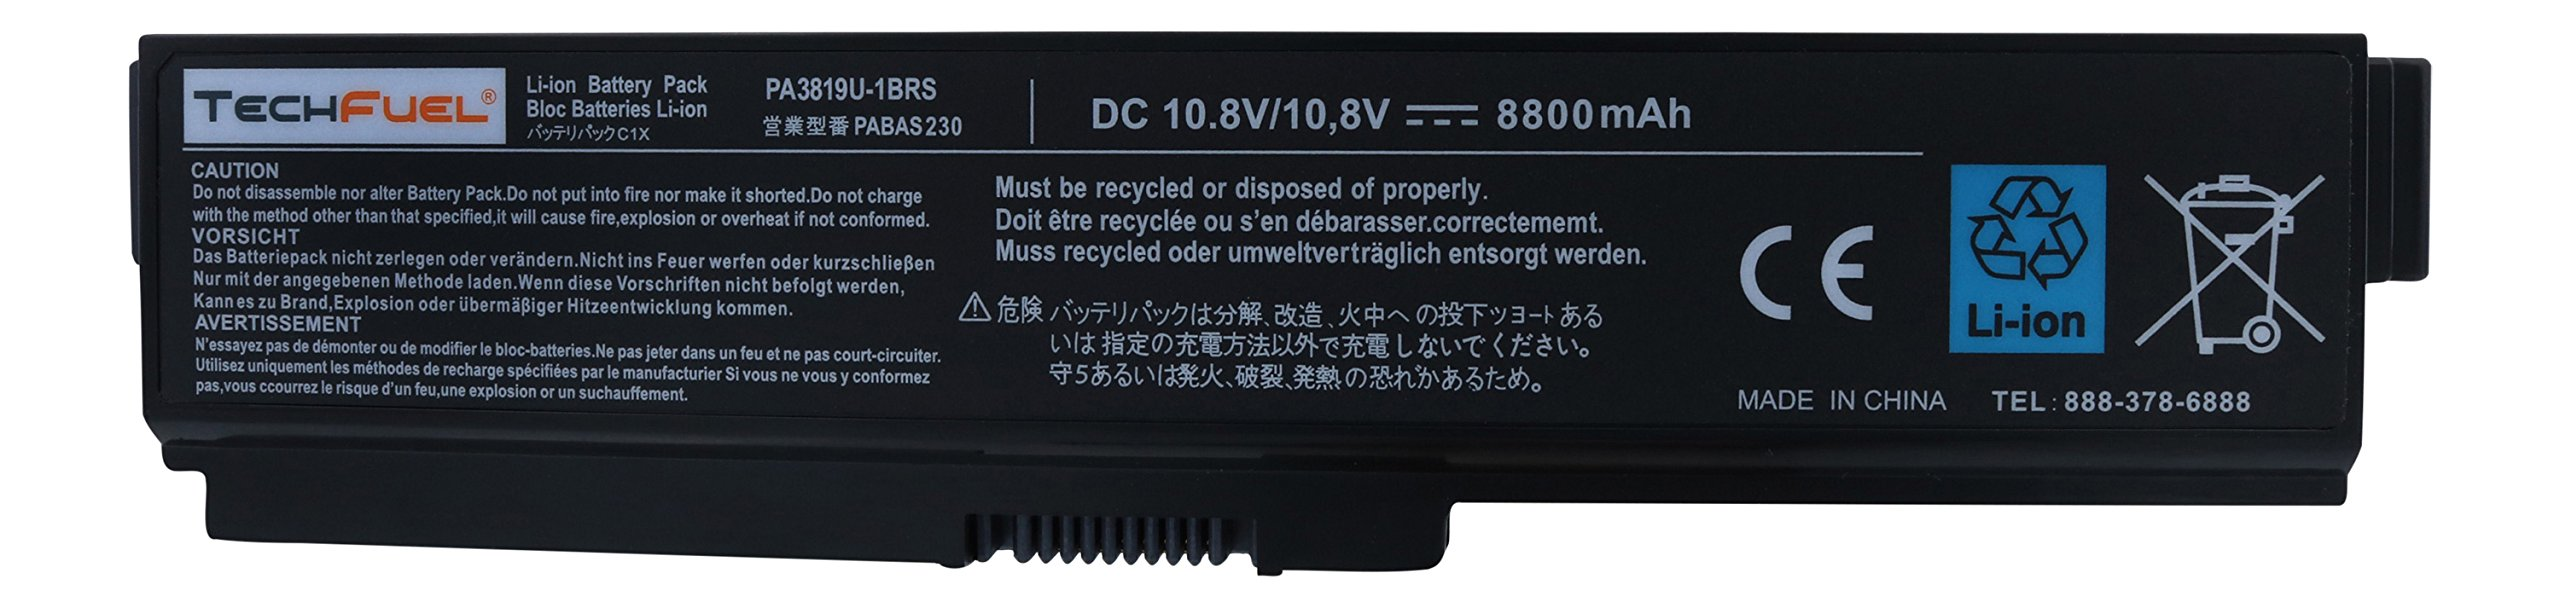 TechFuel Battery for Toshiba Satellite P775-S7215 - Professional Super Capacity Performance Laptop Battery (12-cell/ 8800mAh/95Wh)